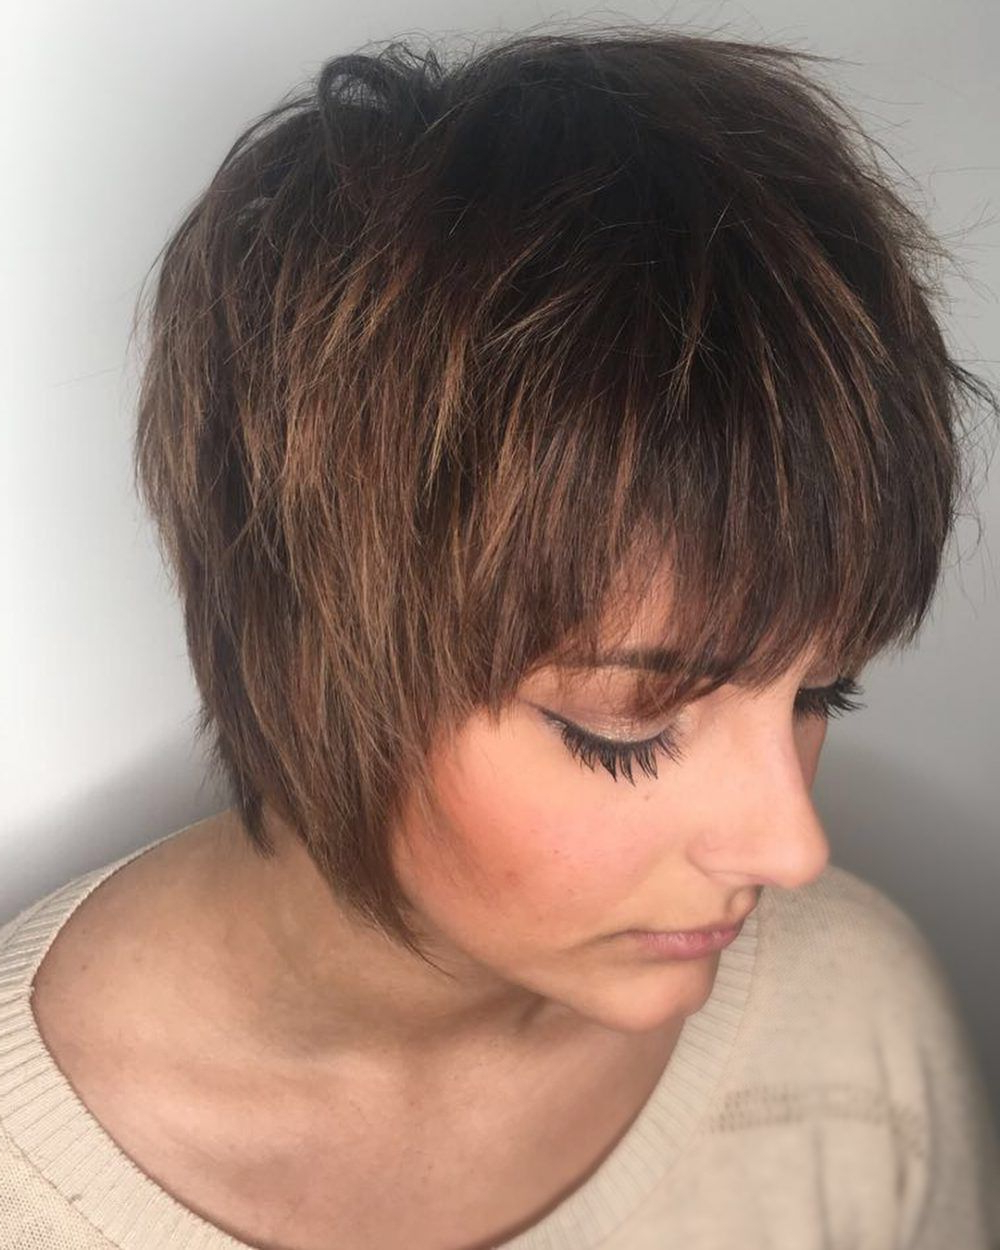 Widely Used Choppy Shag Haircuts With Bangs With 21 Fabulous Short Shaggy Haircuts For Women (View 20 of 20)